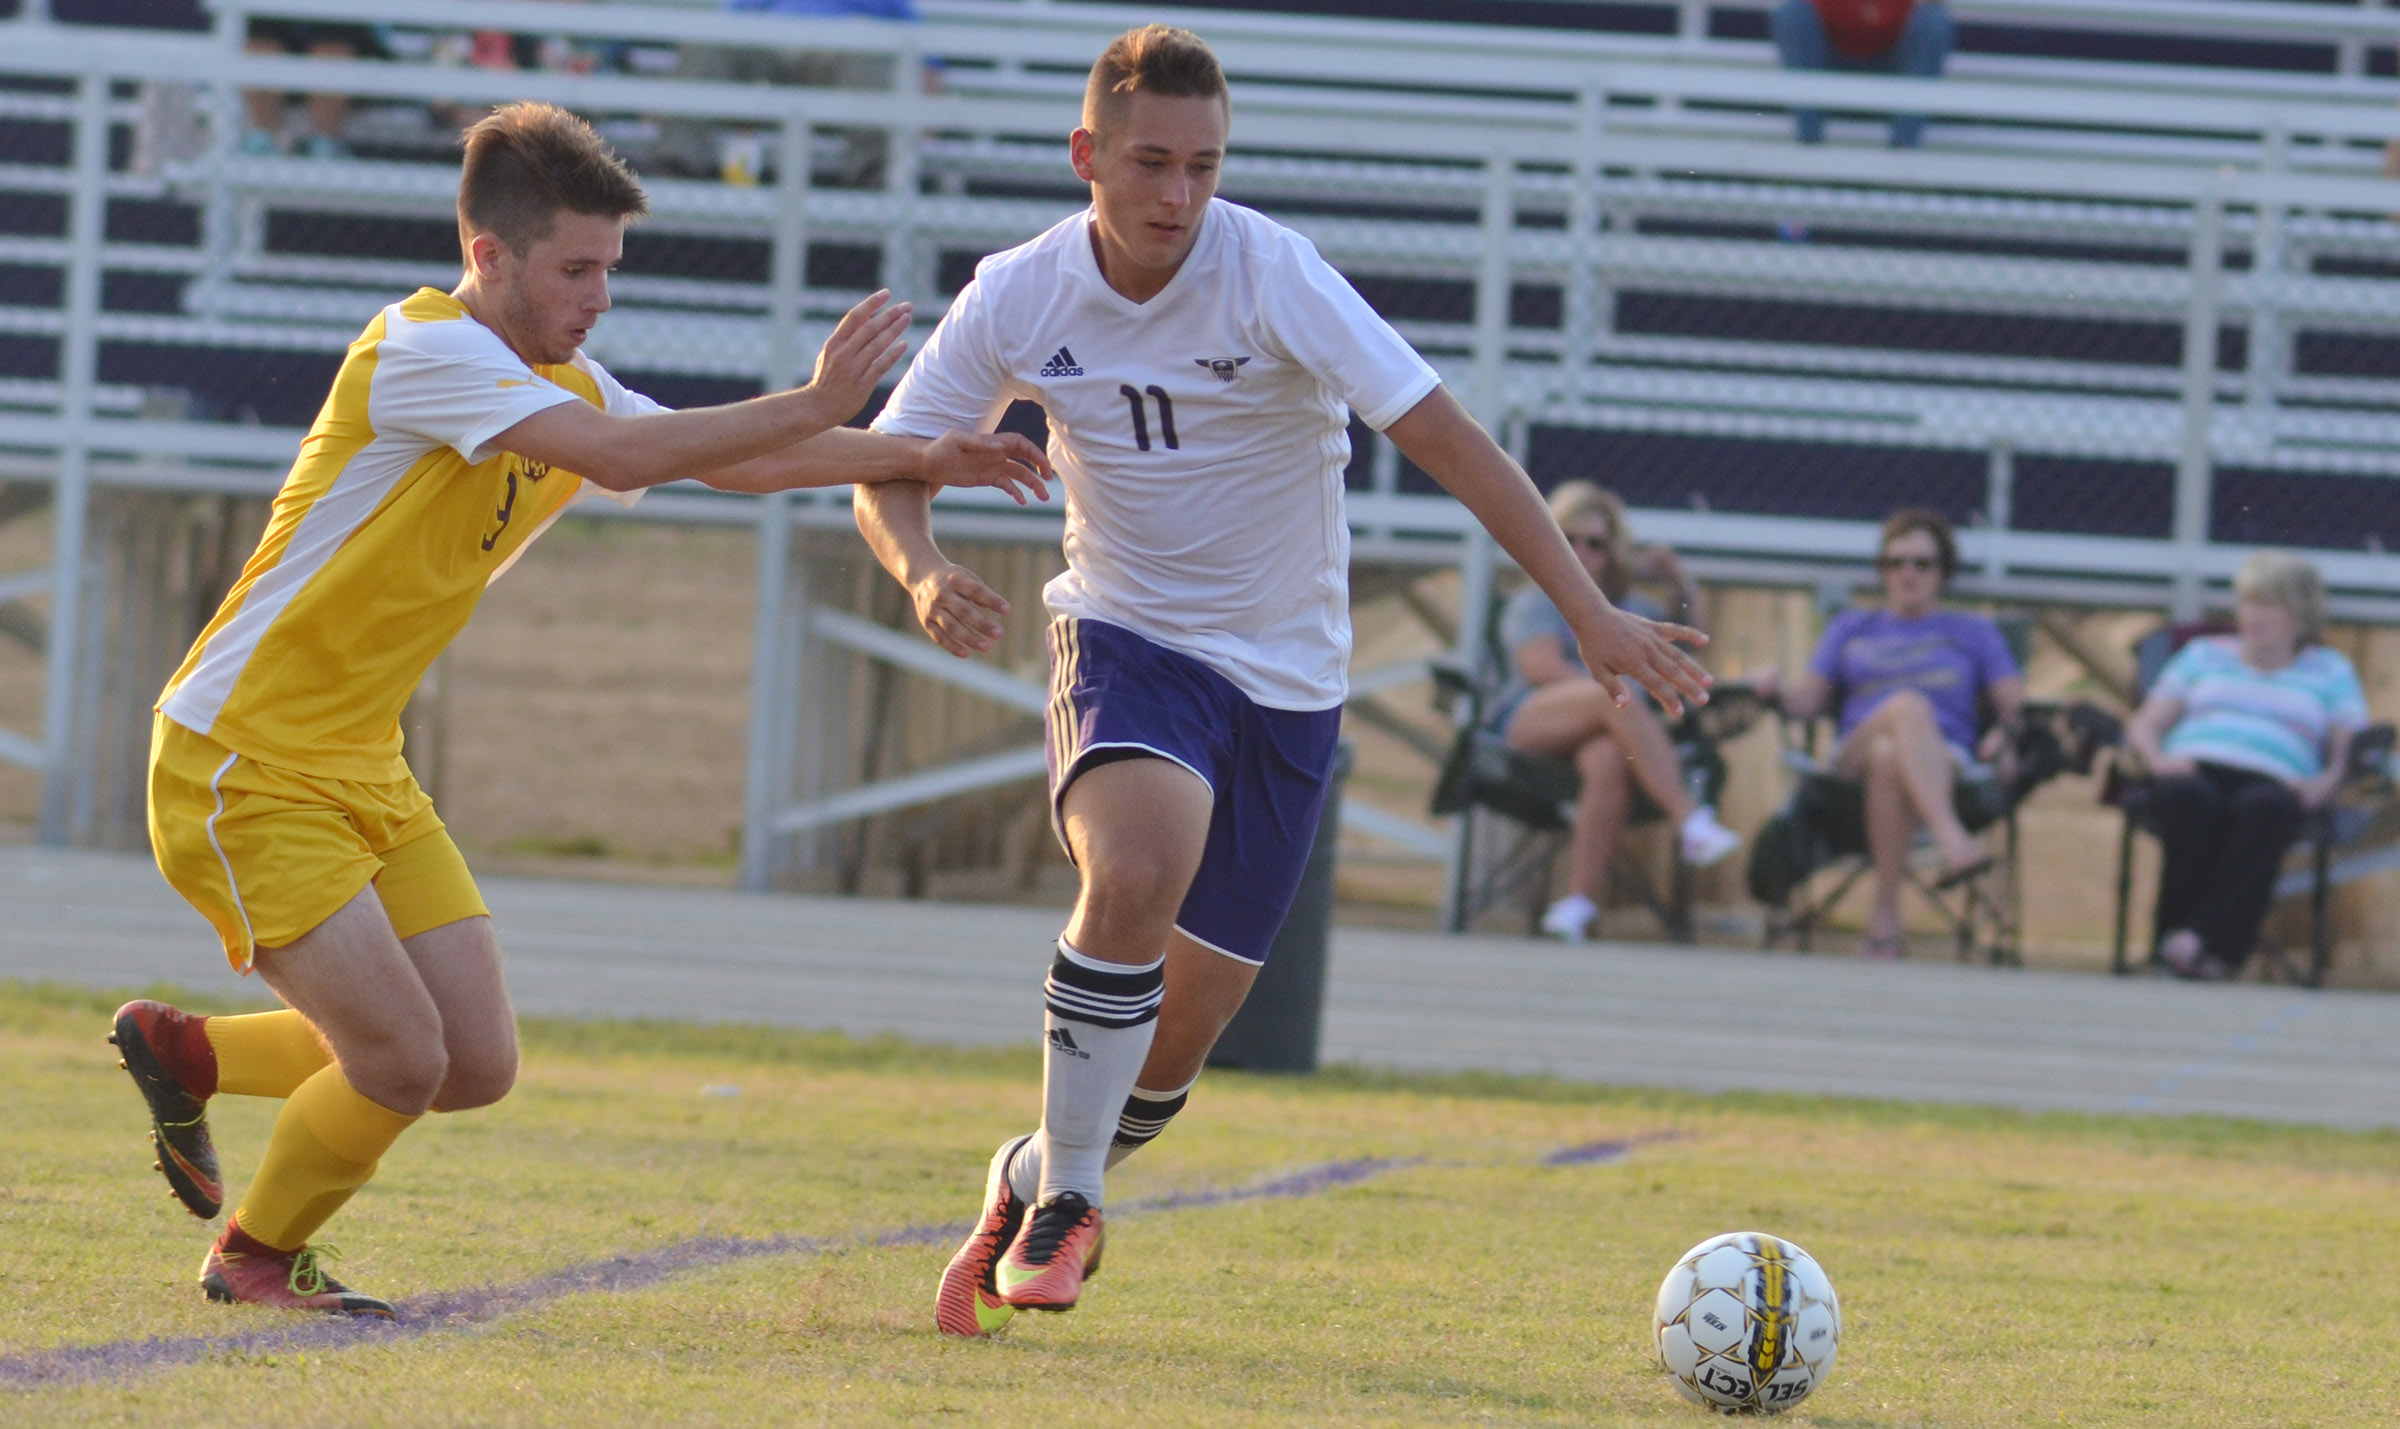 CHS senior Cody Davis protects the ball.